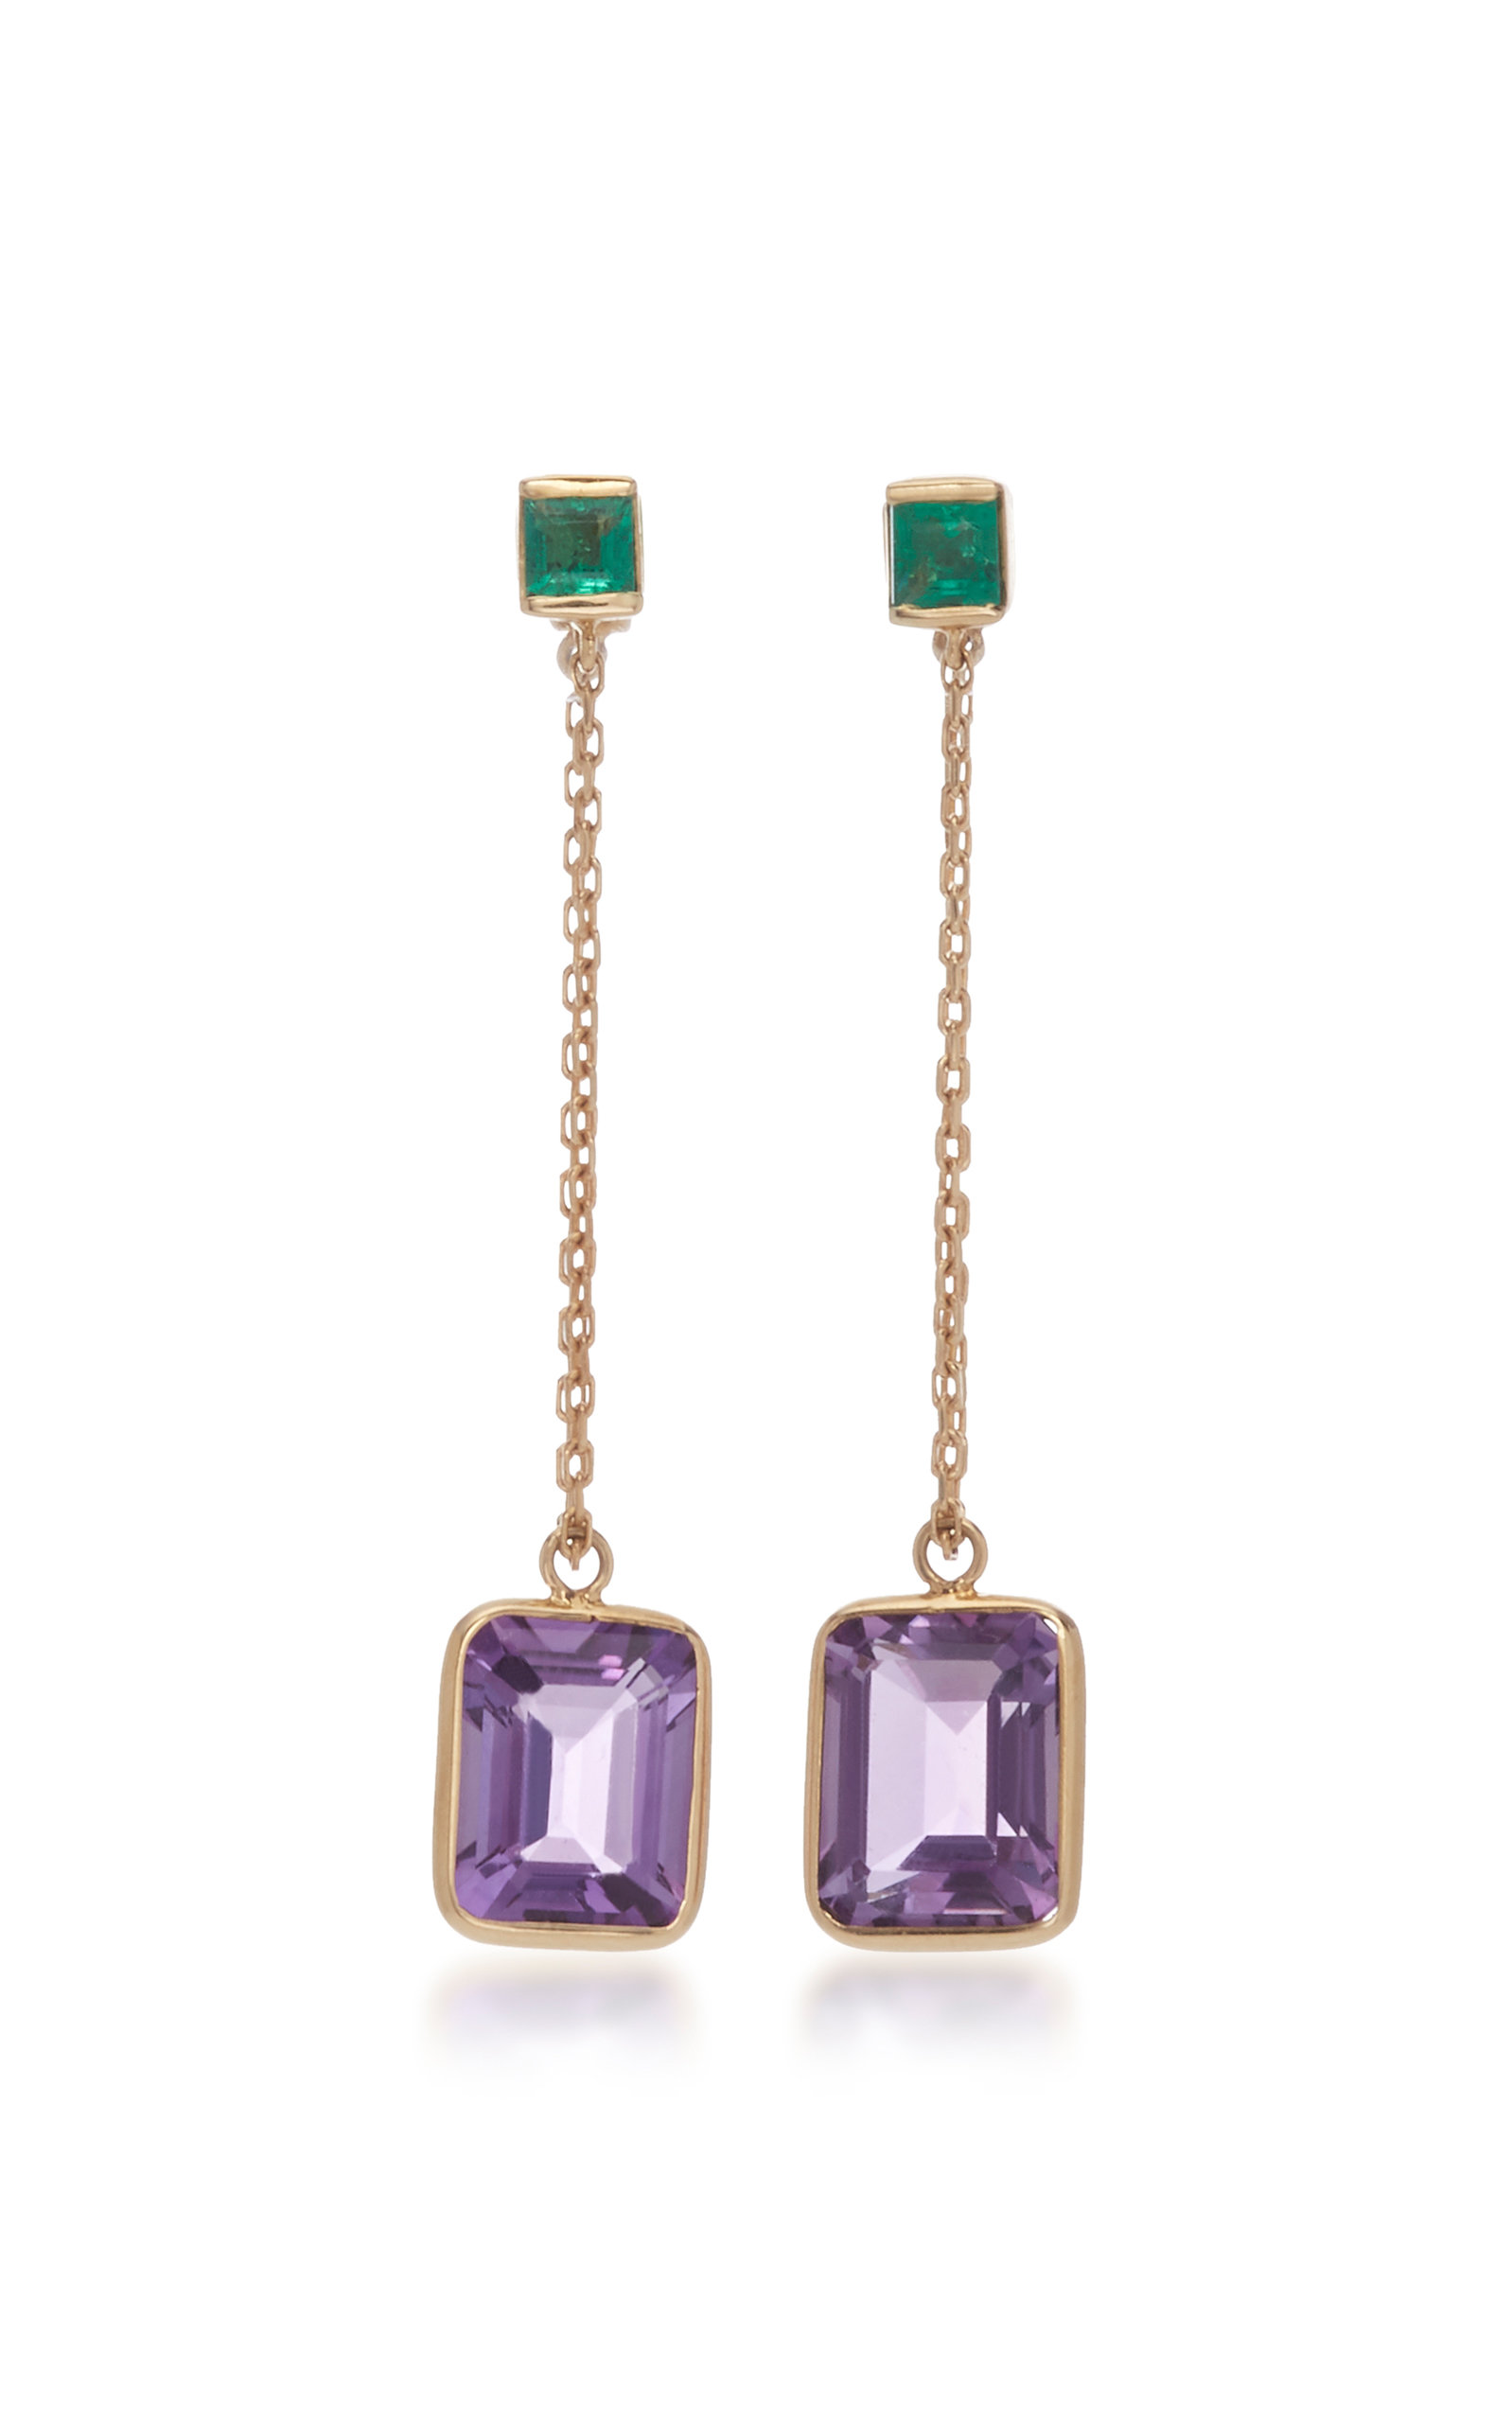 YI COLLECTION 18K Gold Emerald And Amethyst Chain Earrings in Purple